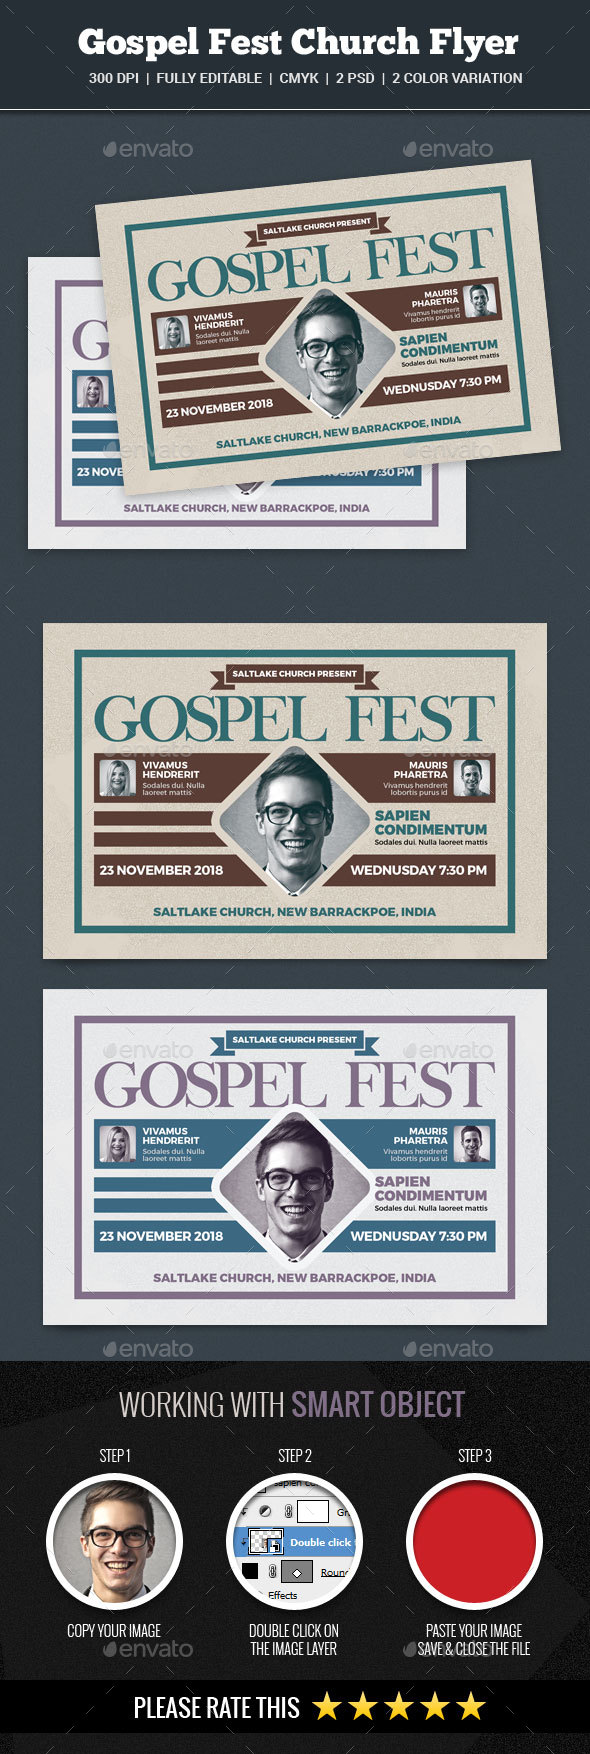 Gospel Fest Church Flyer - Church Flyers